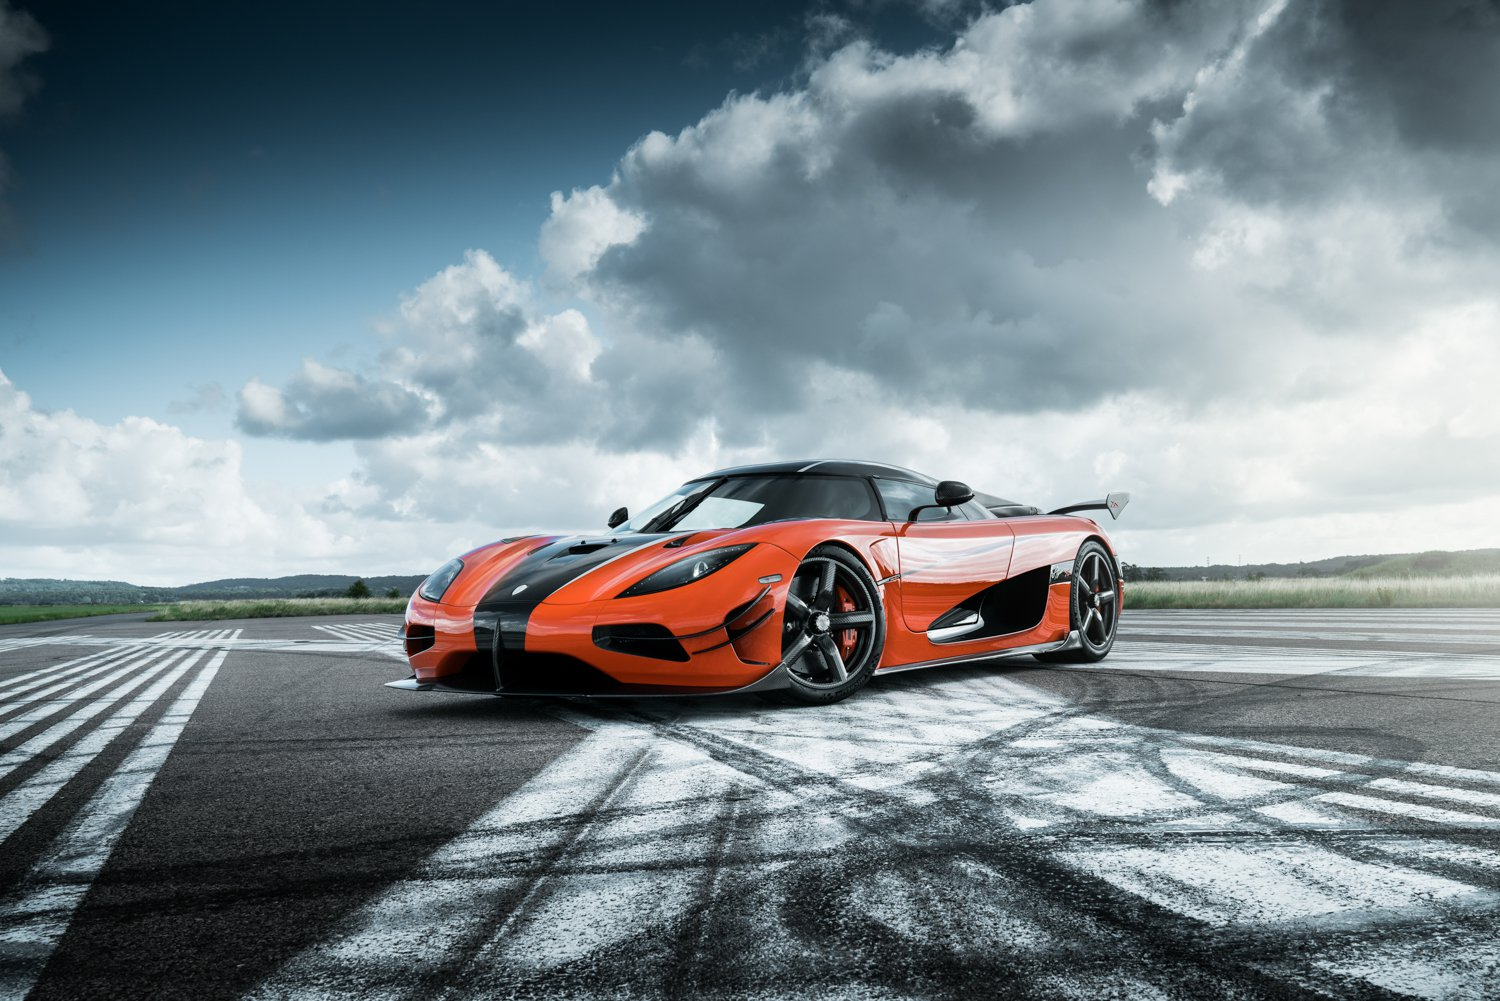 The First US-Bound Koenigsegg Agera RS Arrives this Week in California